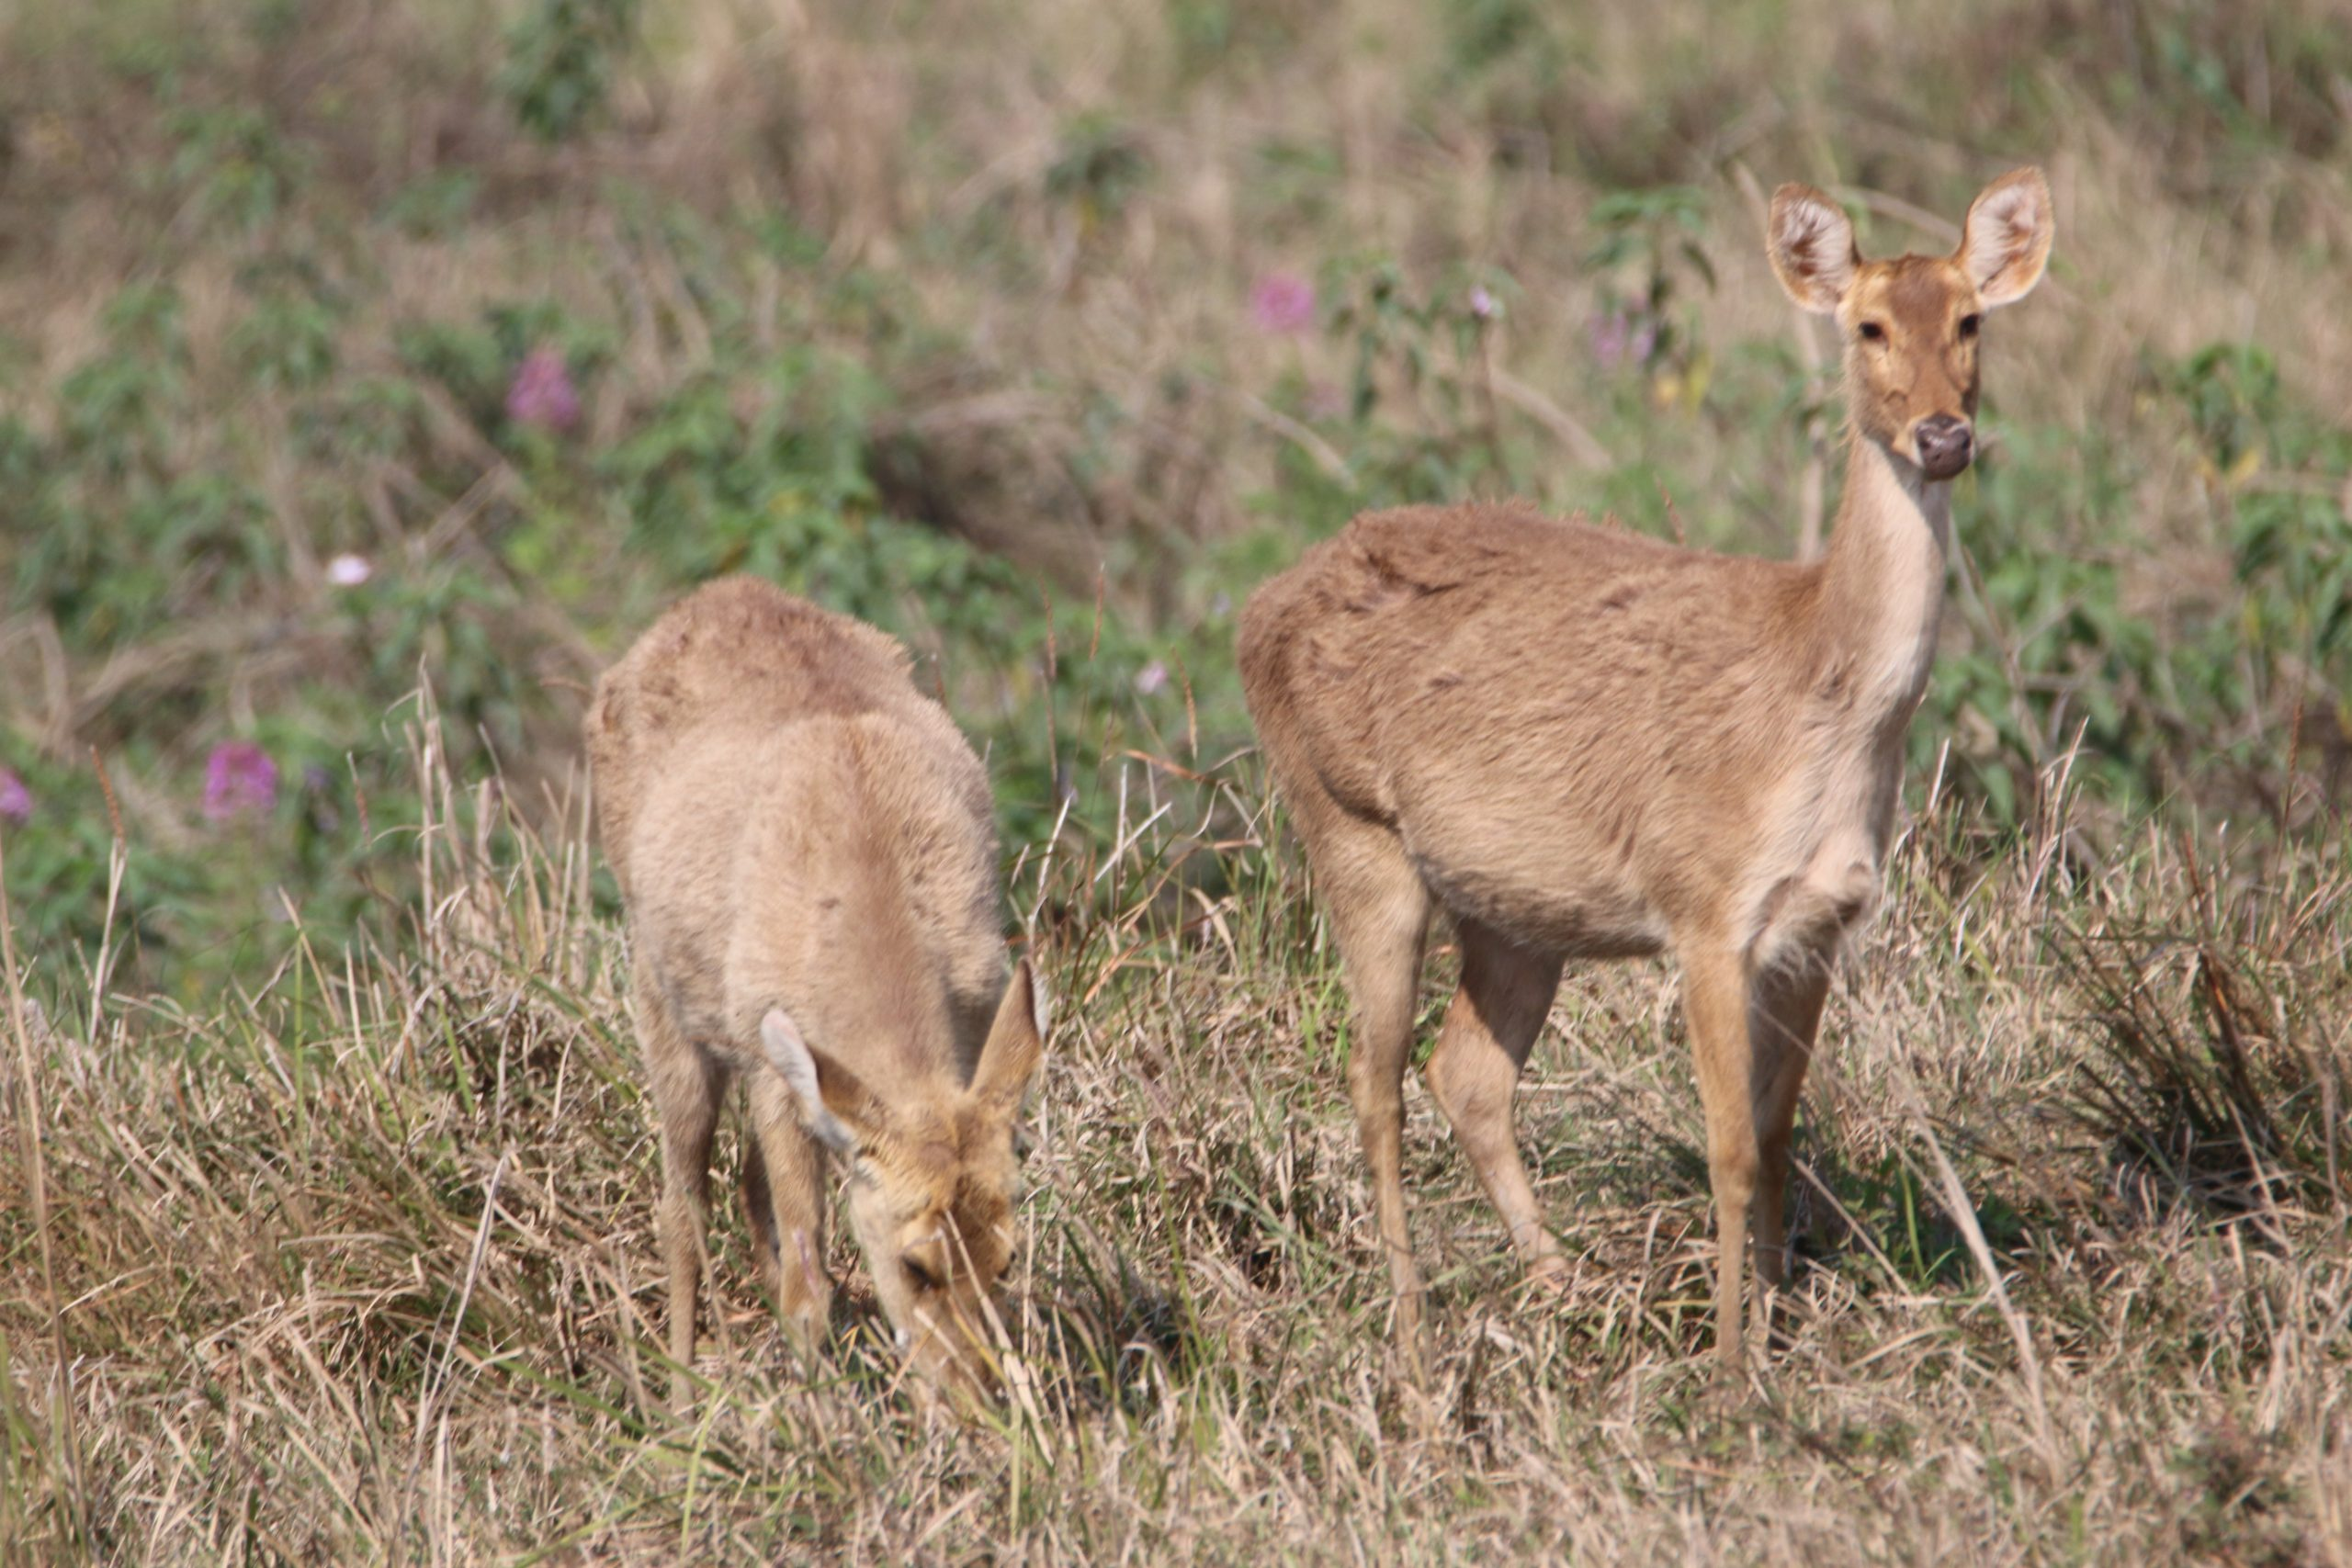 Pair of Deer in grass field